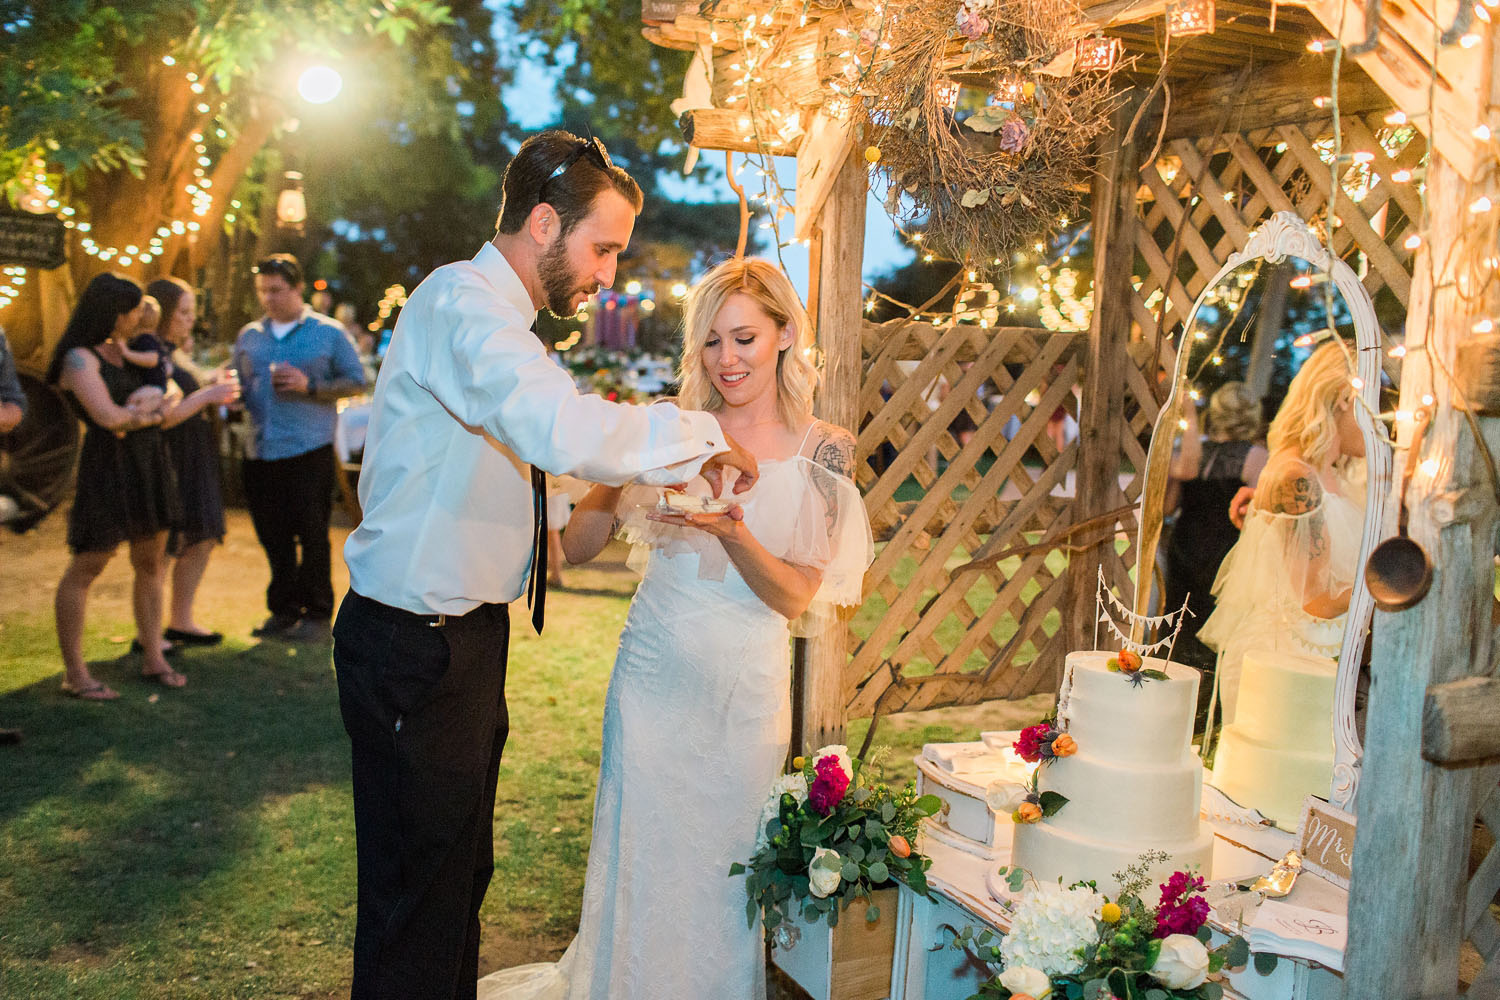 The Photege - Elegant Boho Wedding on Suburu Farm in Bakersfield California- Cassie and Darin Buoni-3075